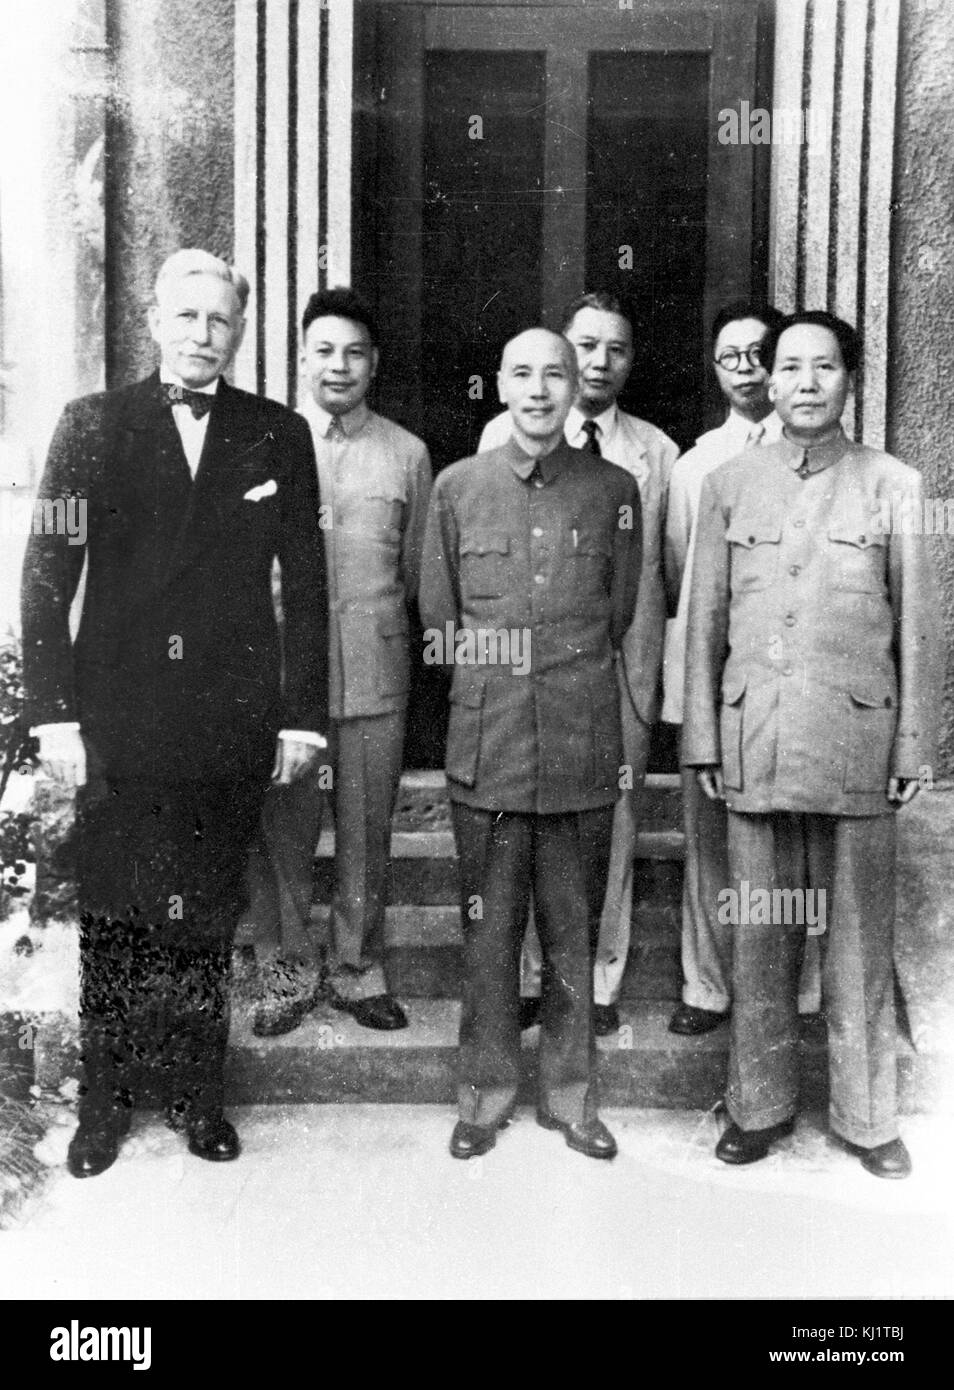 the role chiang kai shek played in the chinese nationalist party Madame chiang kai-shek dies each of whom played a vital role in china during the first half of the last century her eldest sister after sun's death, chiang took control of the kuomintang, the nationalist party founded by sun.